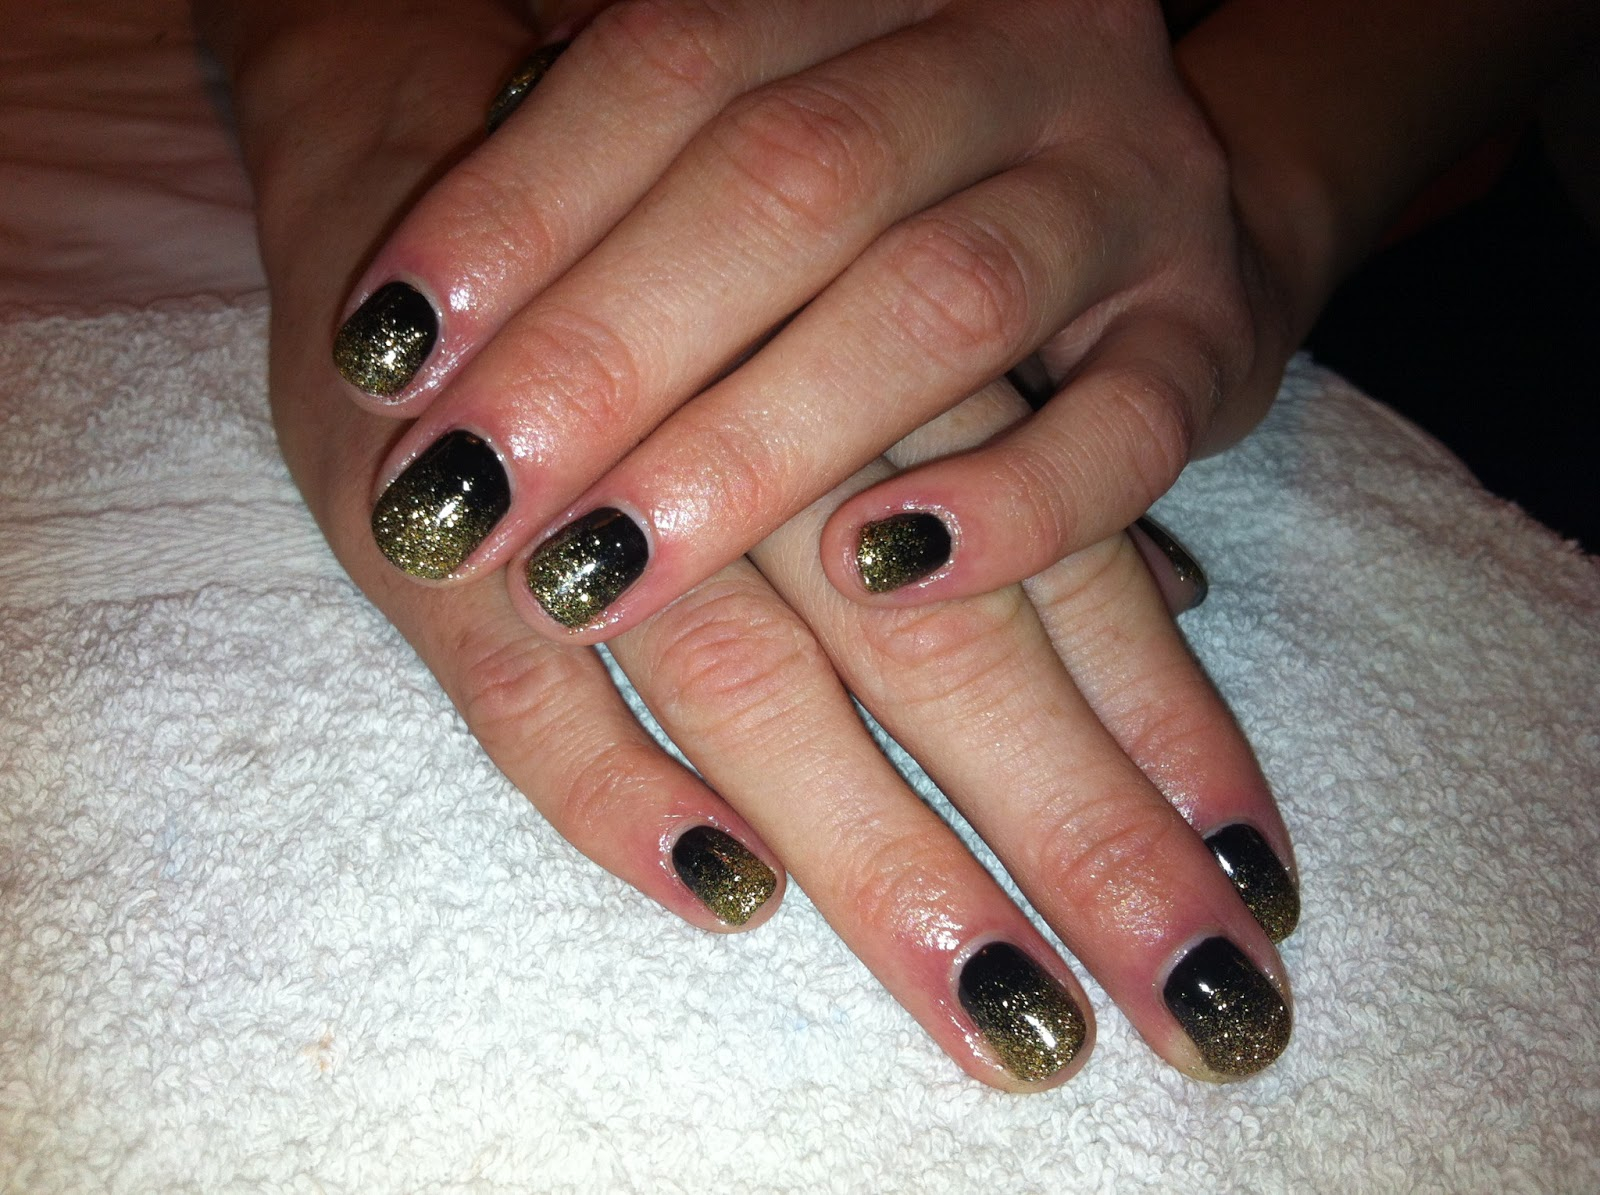 Brush up and polish up cnd shellac nail art black and gold glitter cnd shellac nail art black and gold glitter prinsesfo Image collections